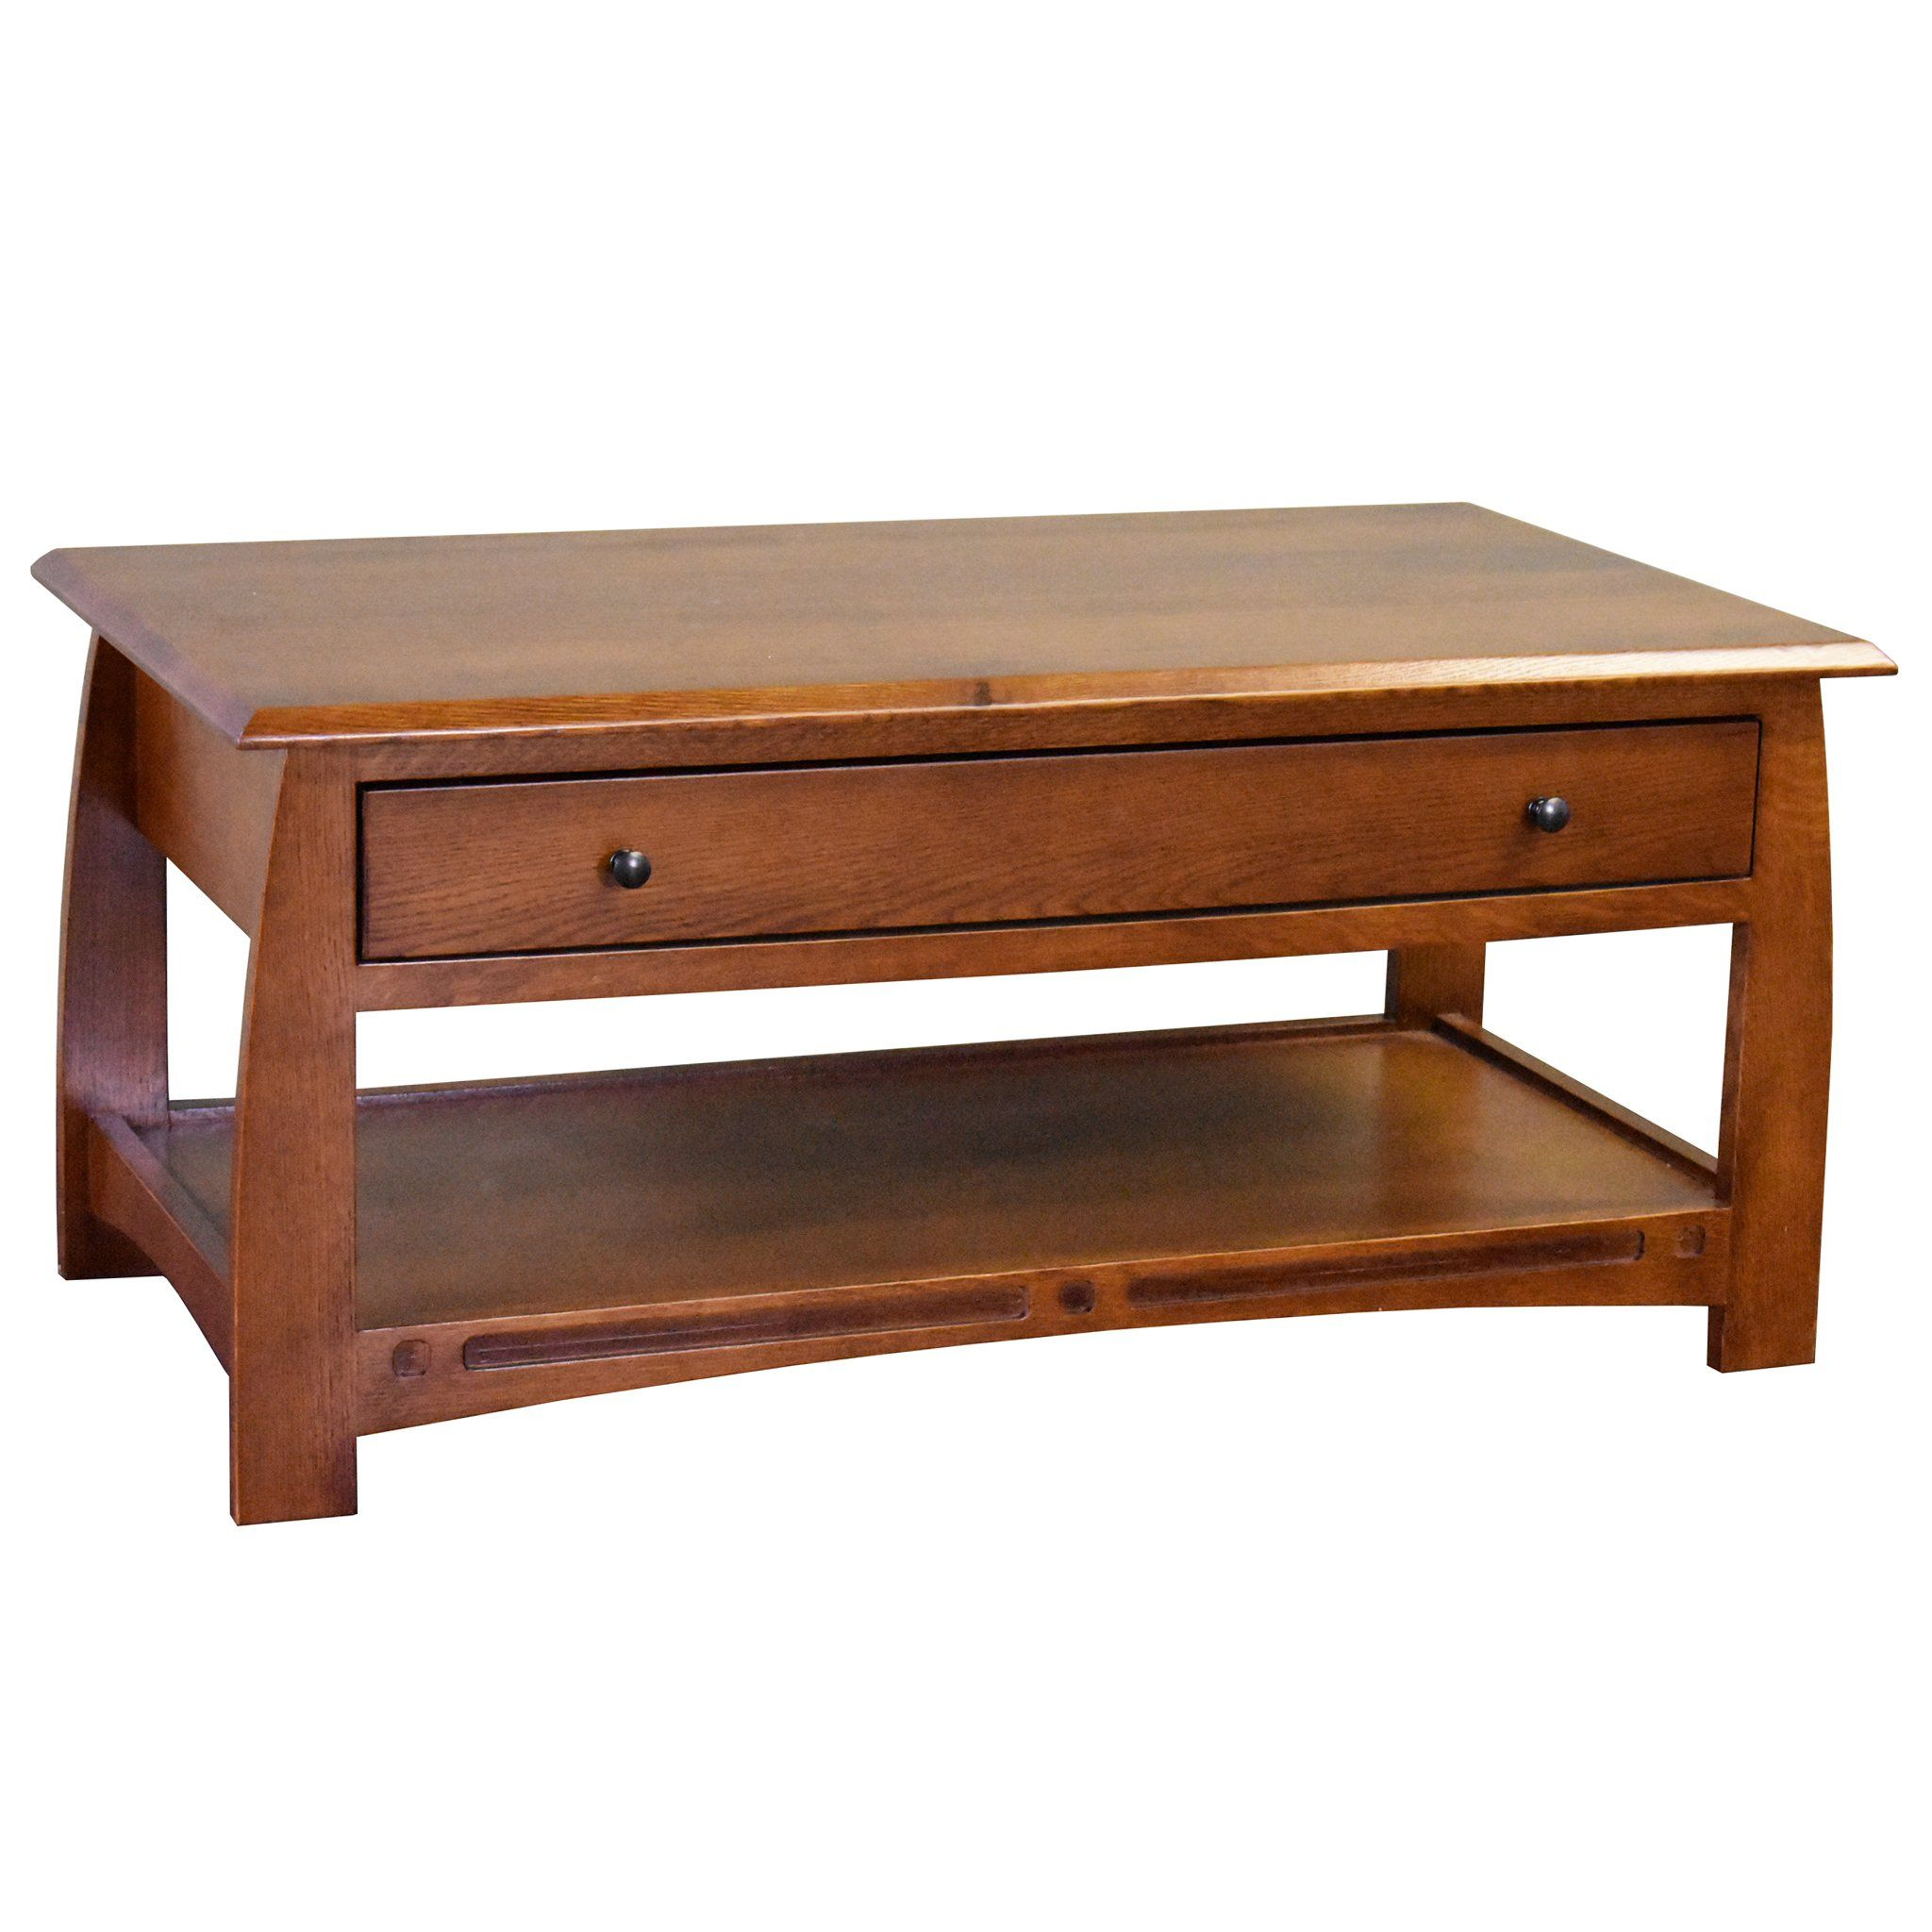 Mission Crofter Style 1 Drawer Coffee Table Model A32 In 2021 Coffee Table Mission Style Furniture Cool Coffee Tables [ 2048 x 2048 Pixel ]